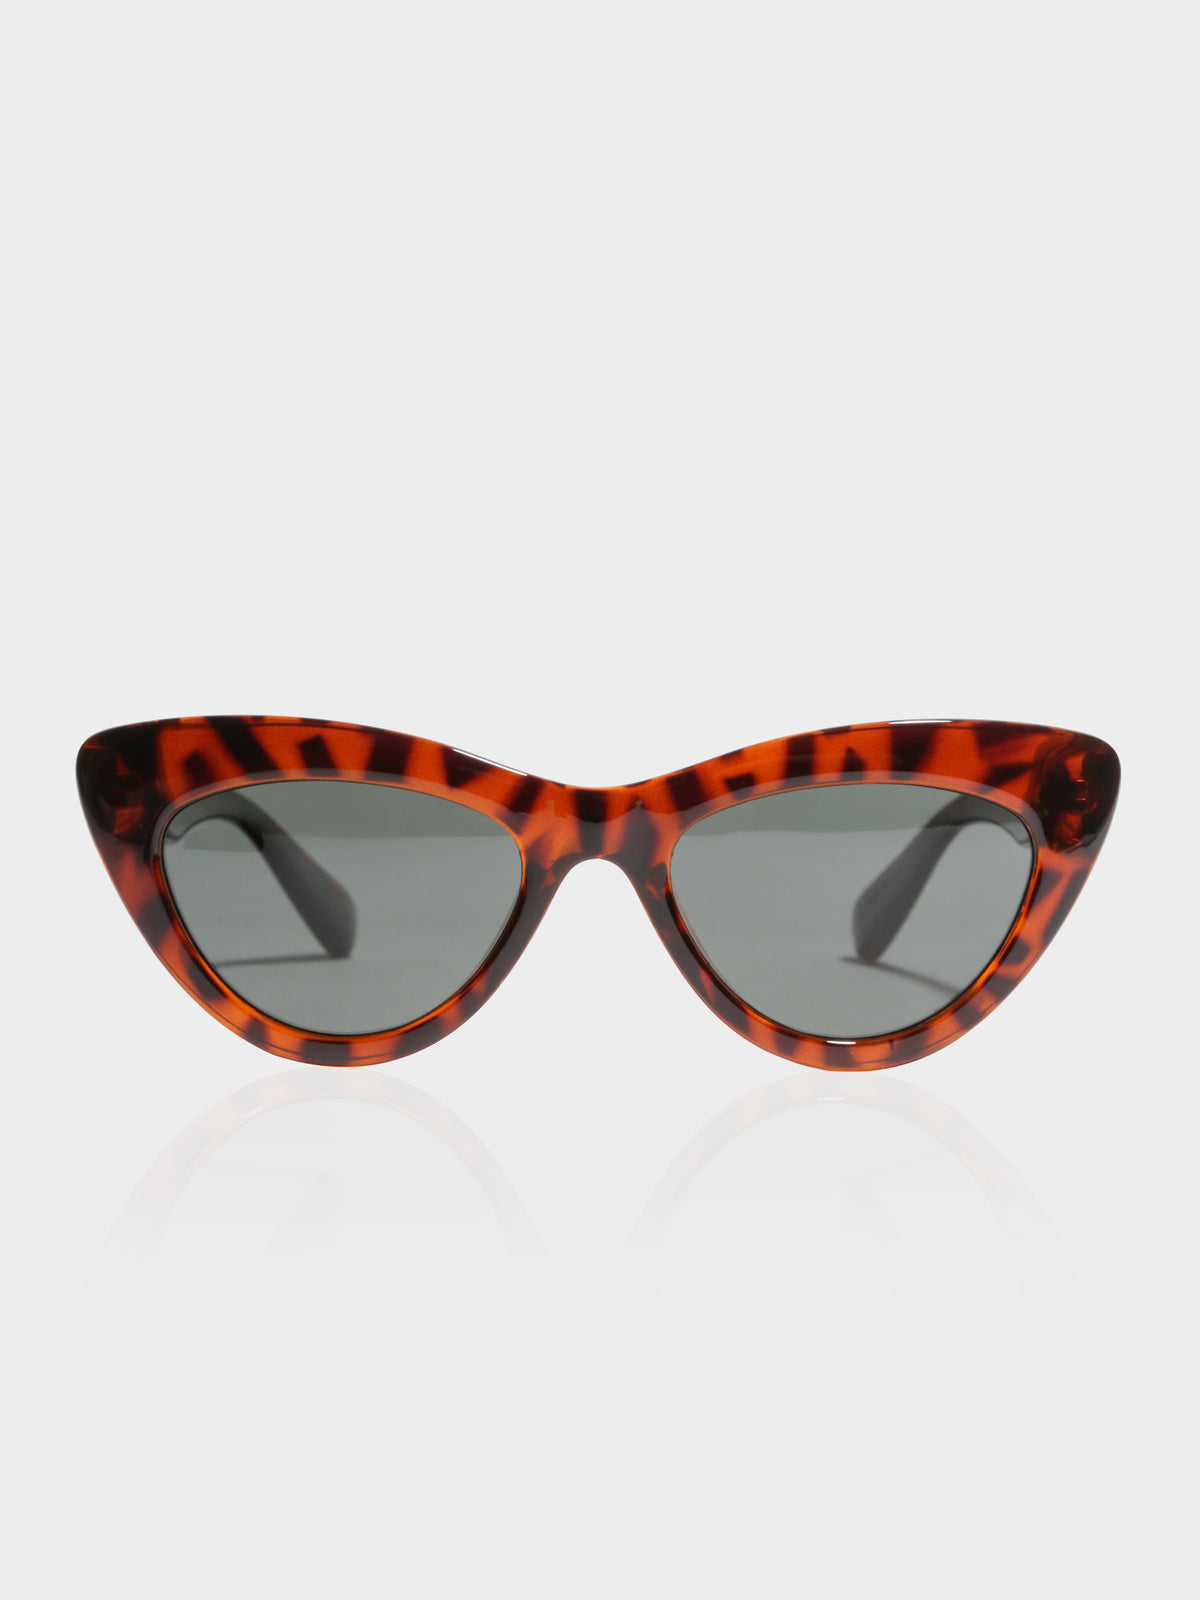 Ams Polaraised Sunglasses in Tortoise